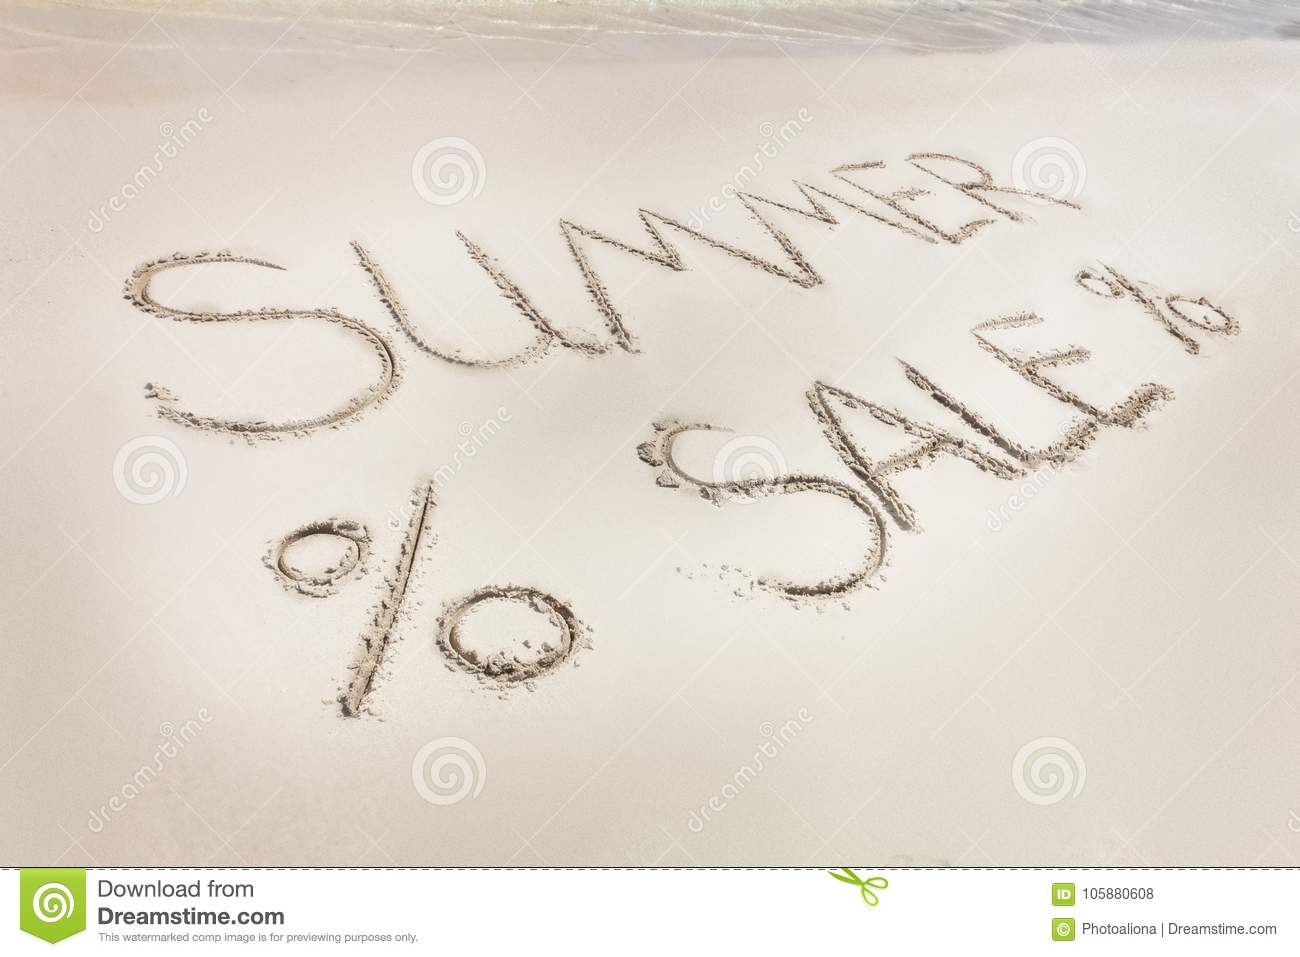 Download The Summer Sale Word Written On The Beach Sand. Stock Photo - Image of sandy, resort: 105880608